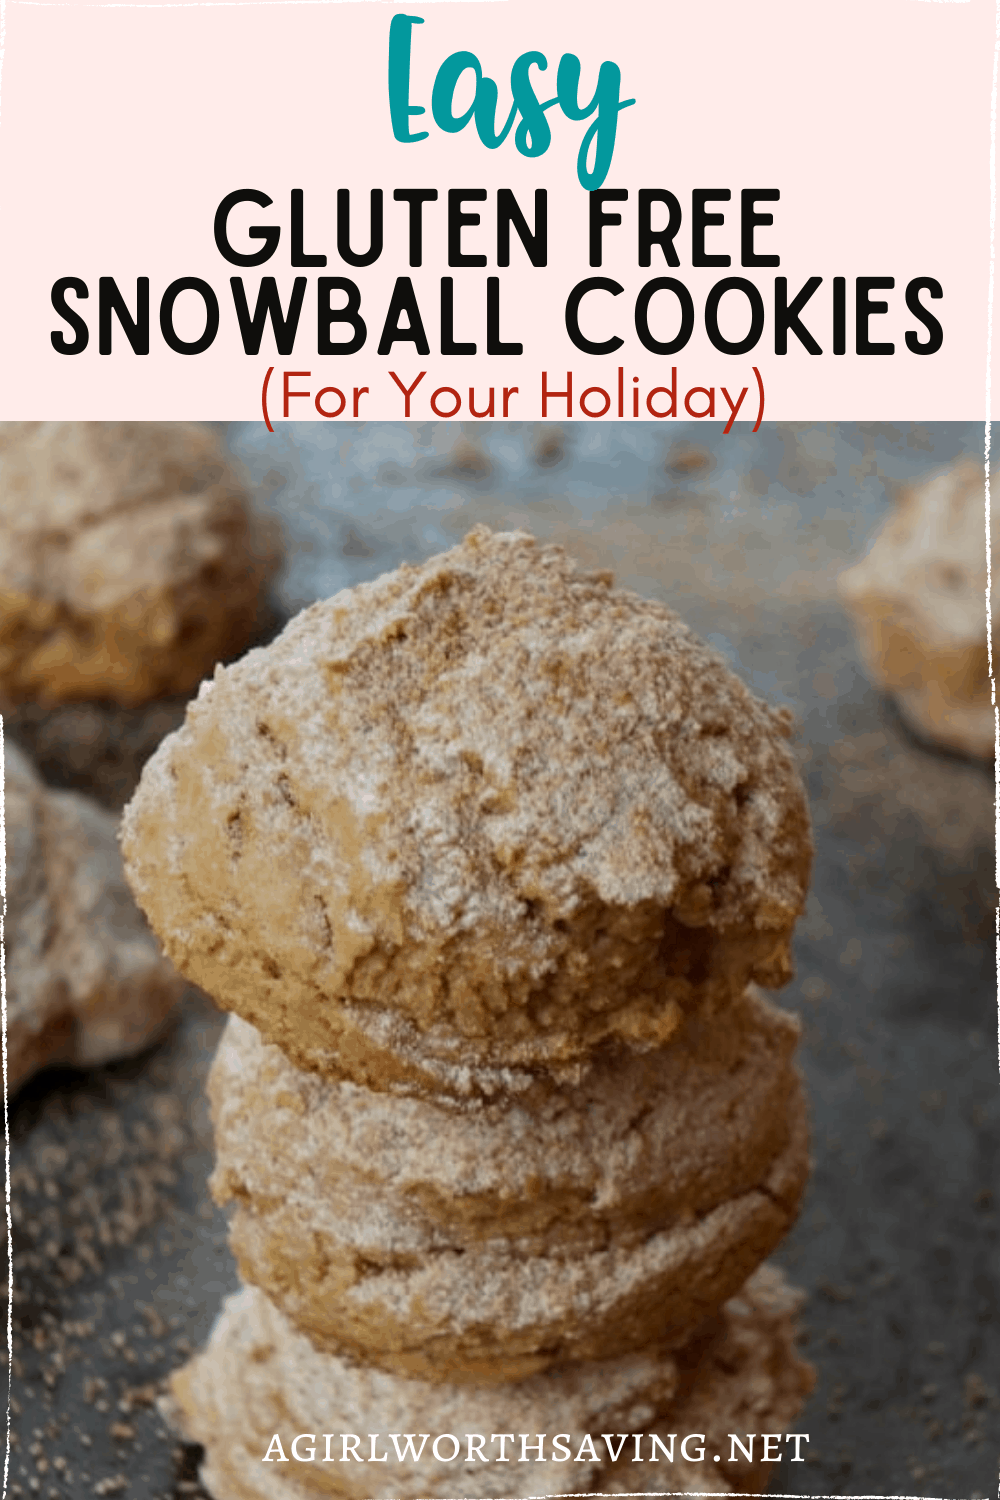 Santa will love these snacking on these gluten free snowball cookies. Made with pecans, they are covered in a delicious coconut powdered sugar that everyone will love.